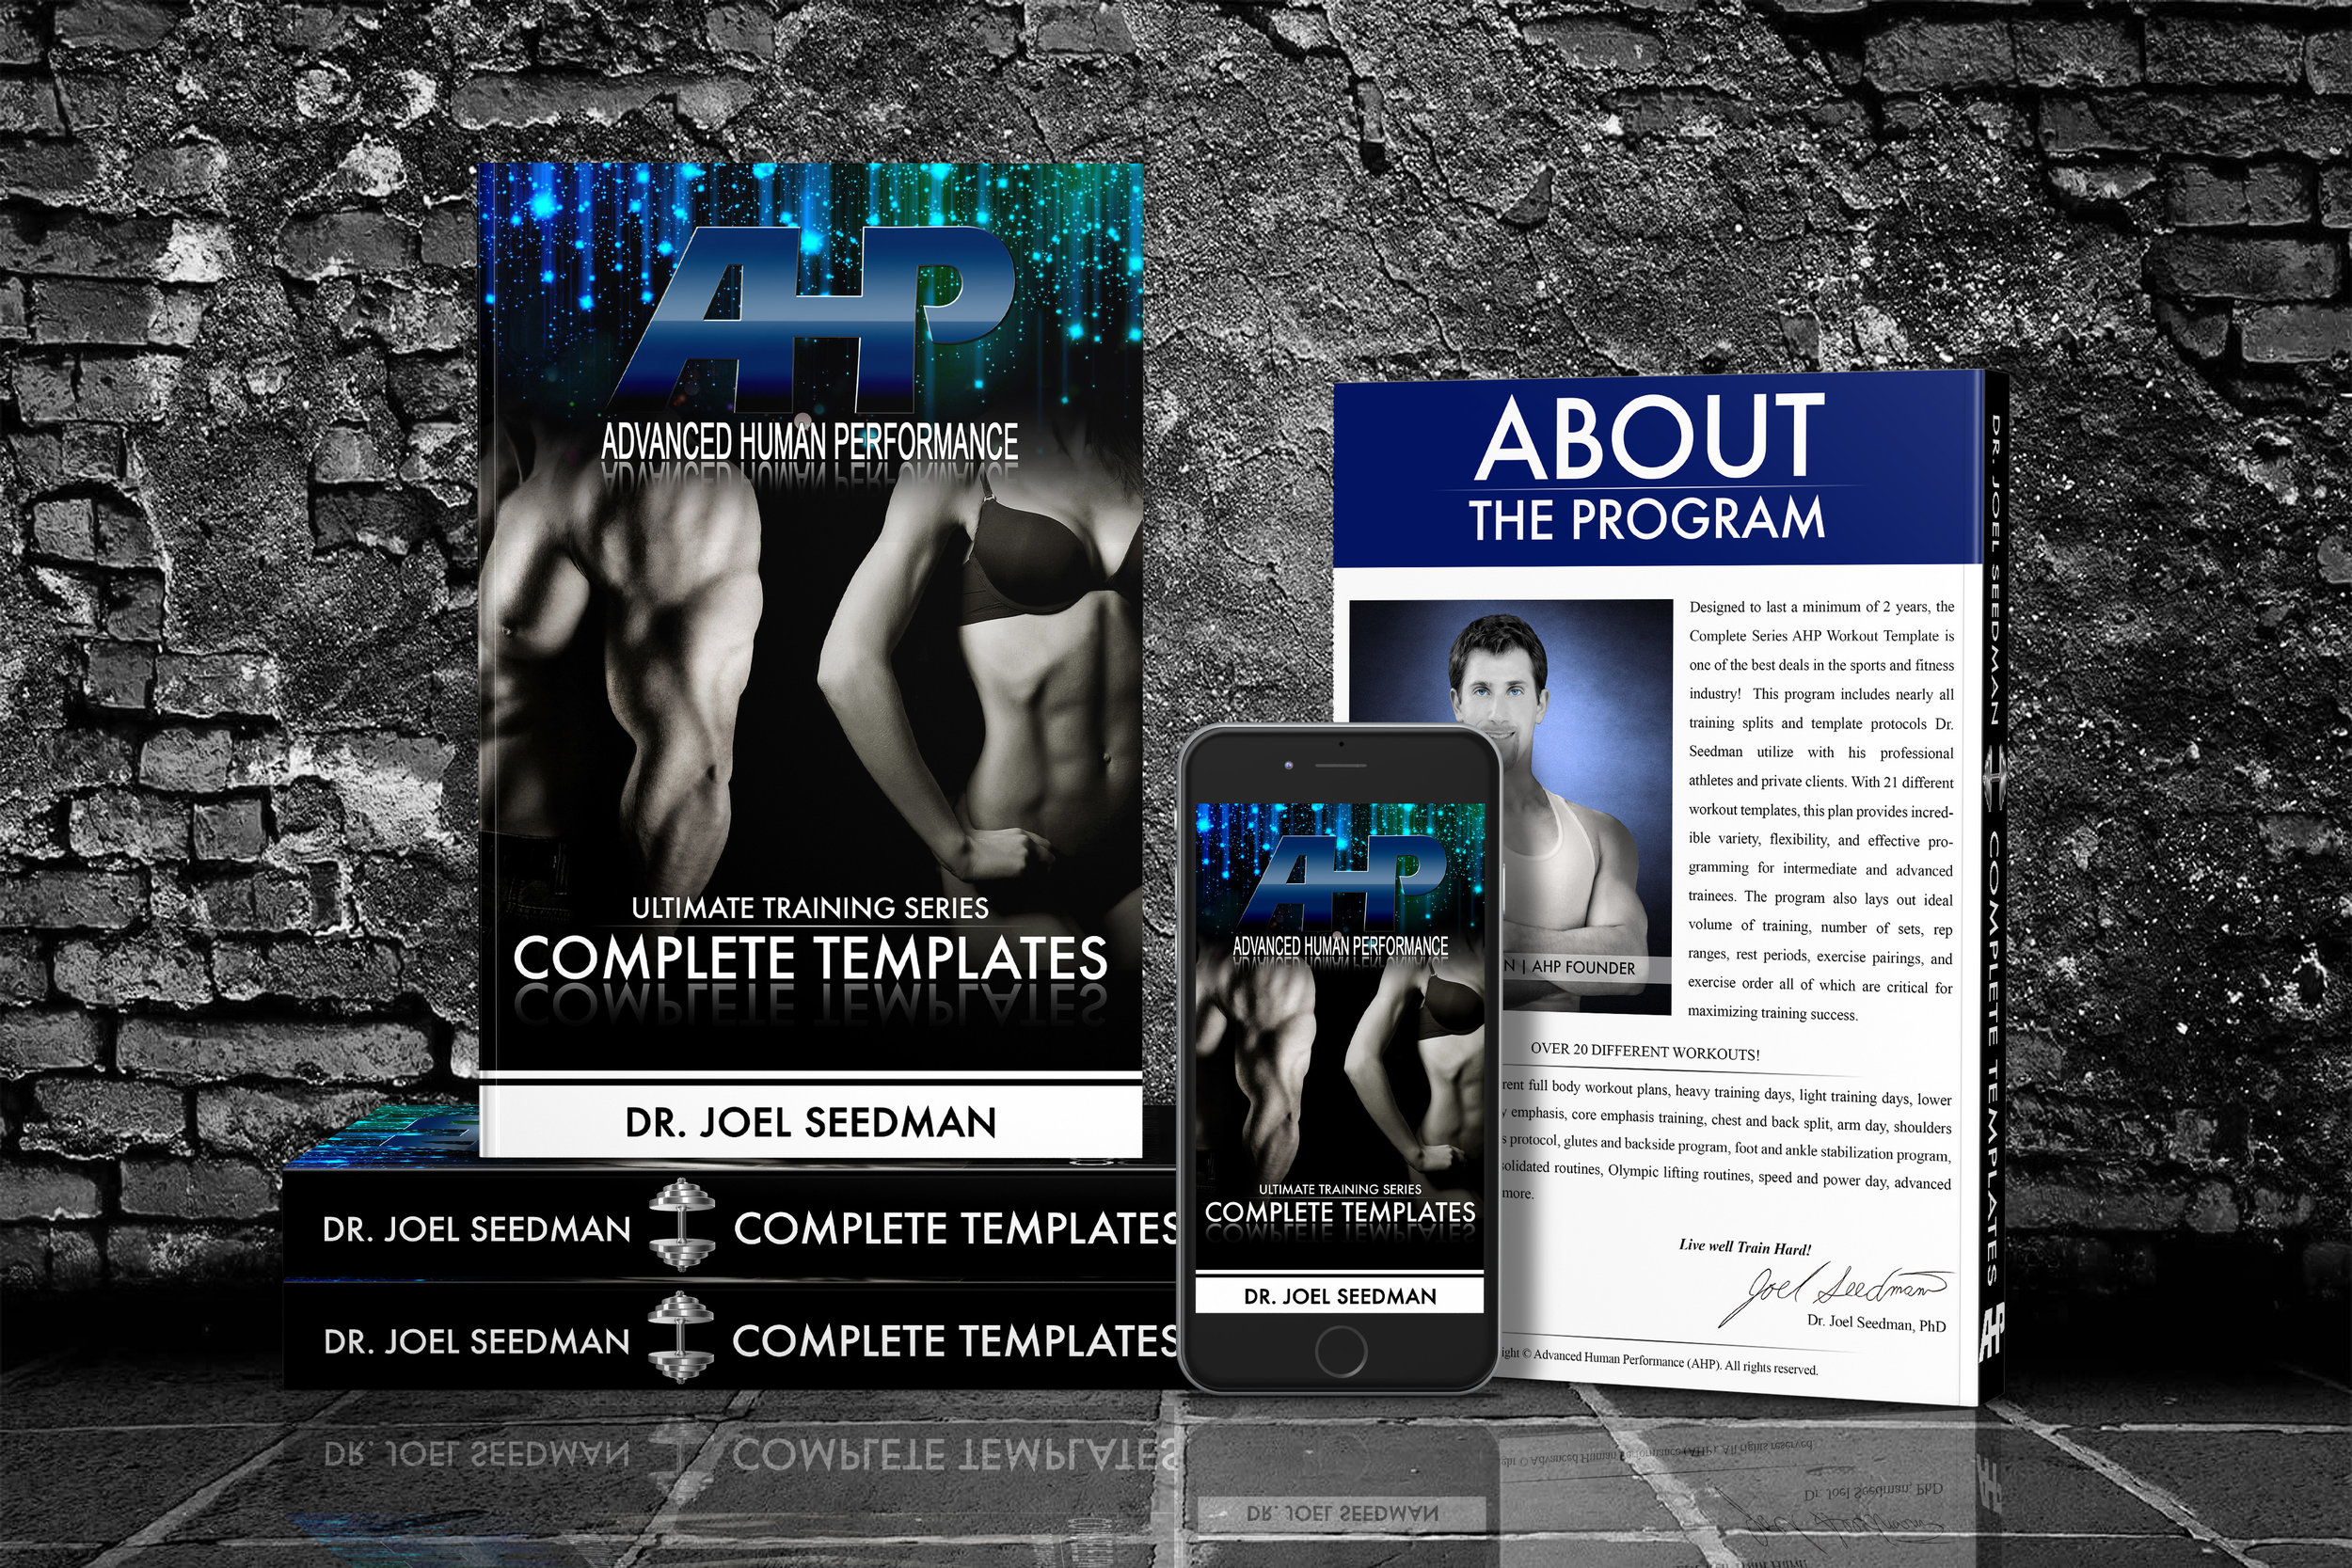 Complete Templates Book Display - Main Product Page.jpg